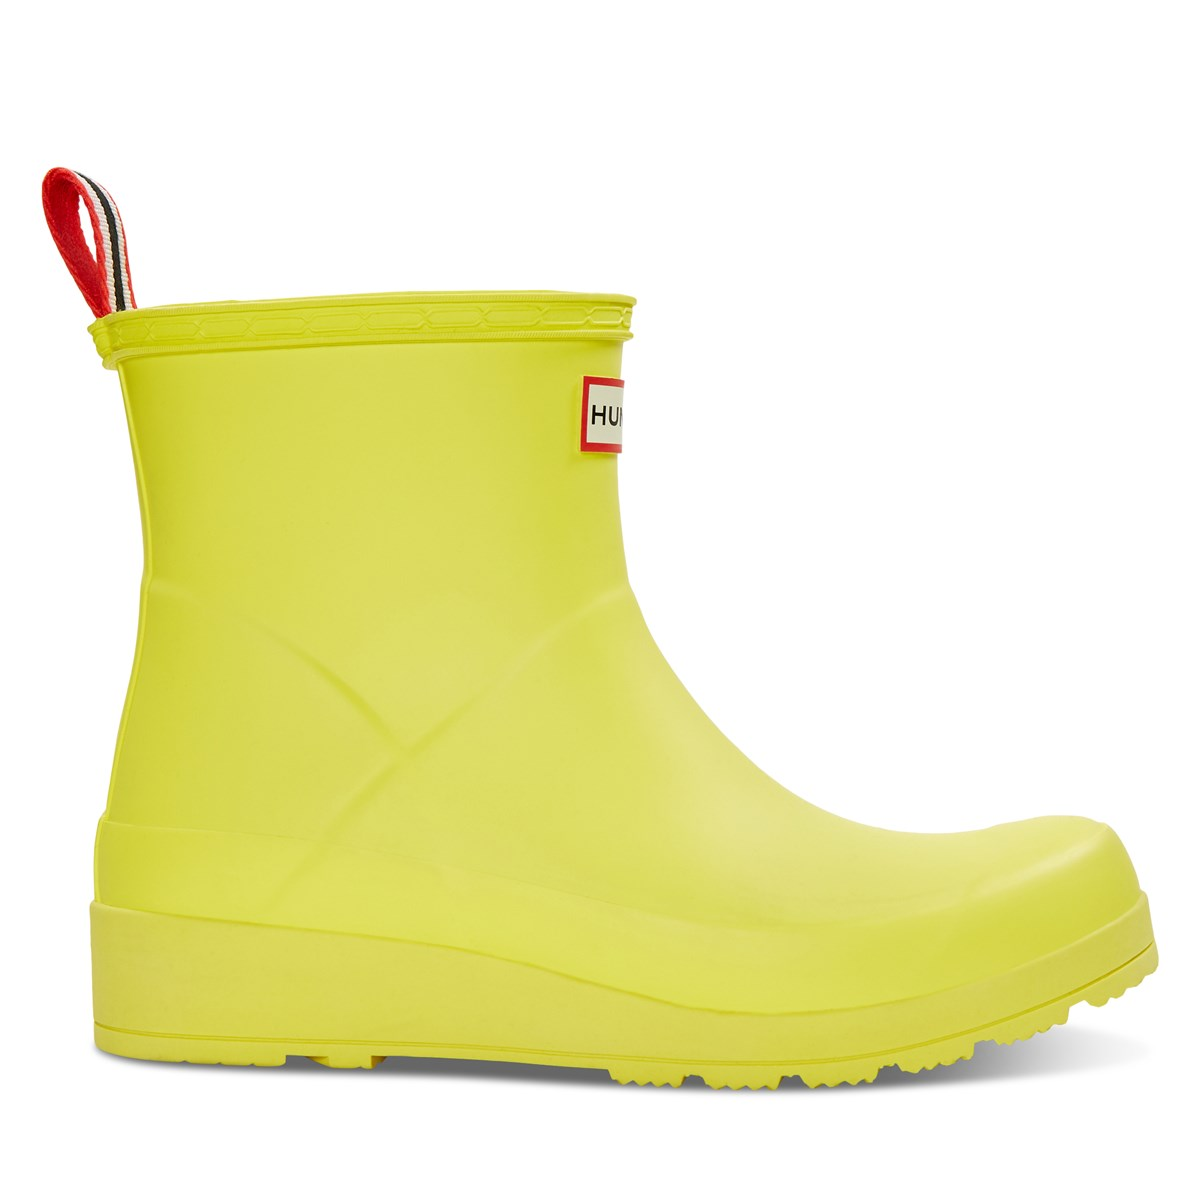 a9c14efb6569 Women s Original Play Short Rain Boots in Yellow